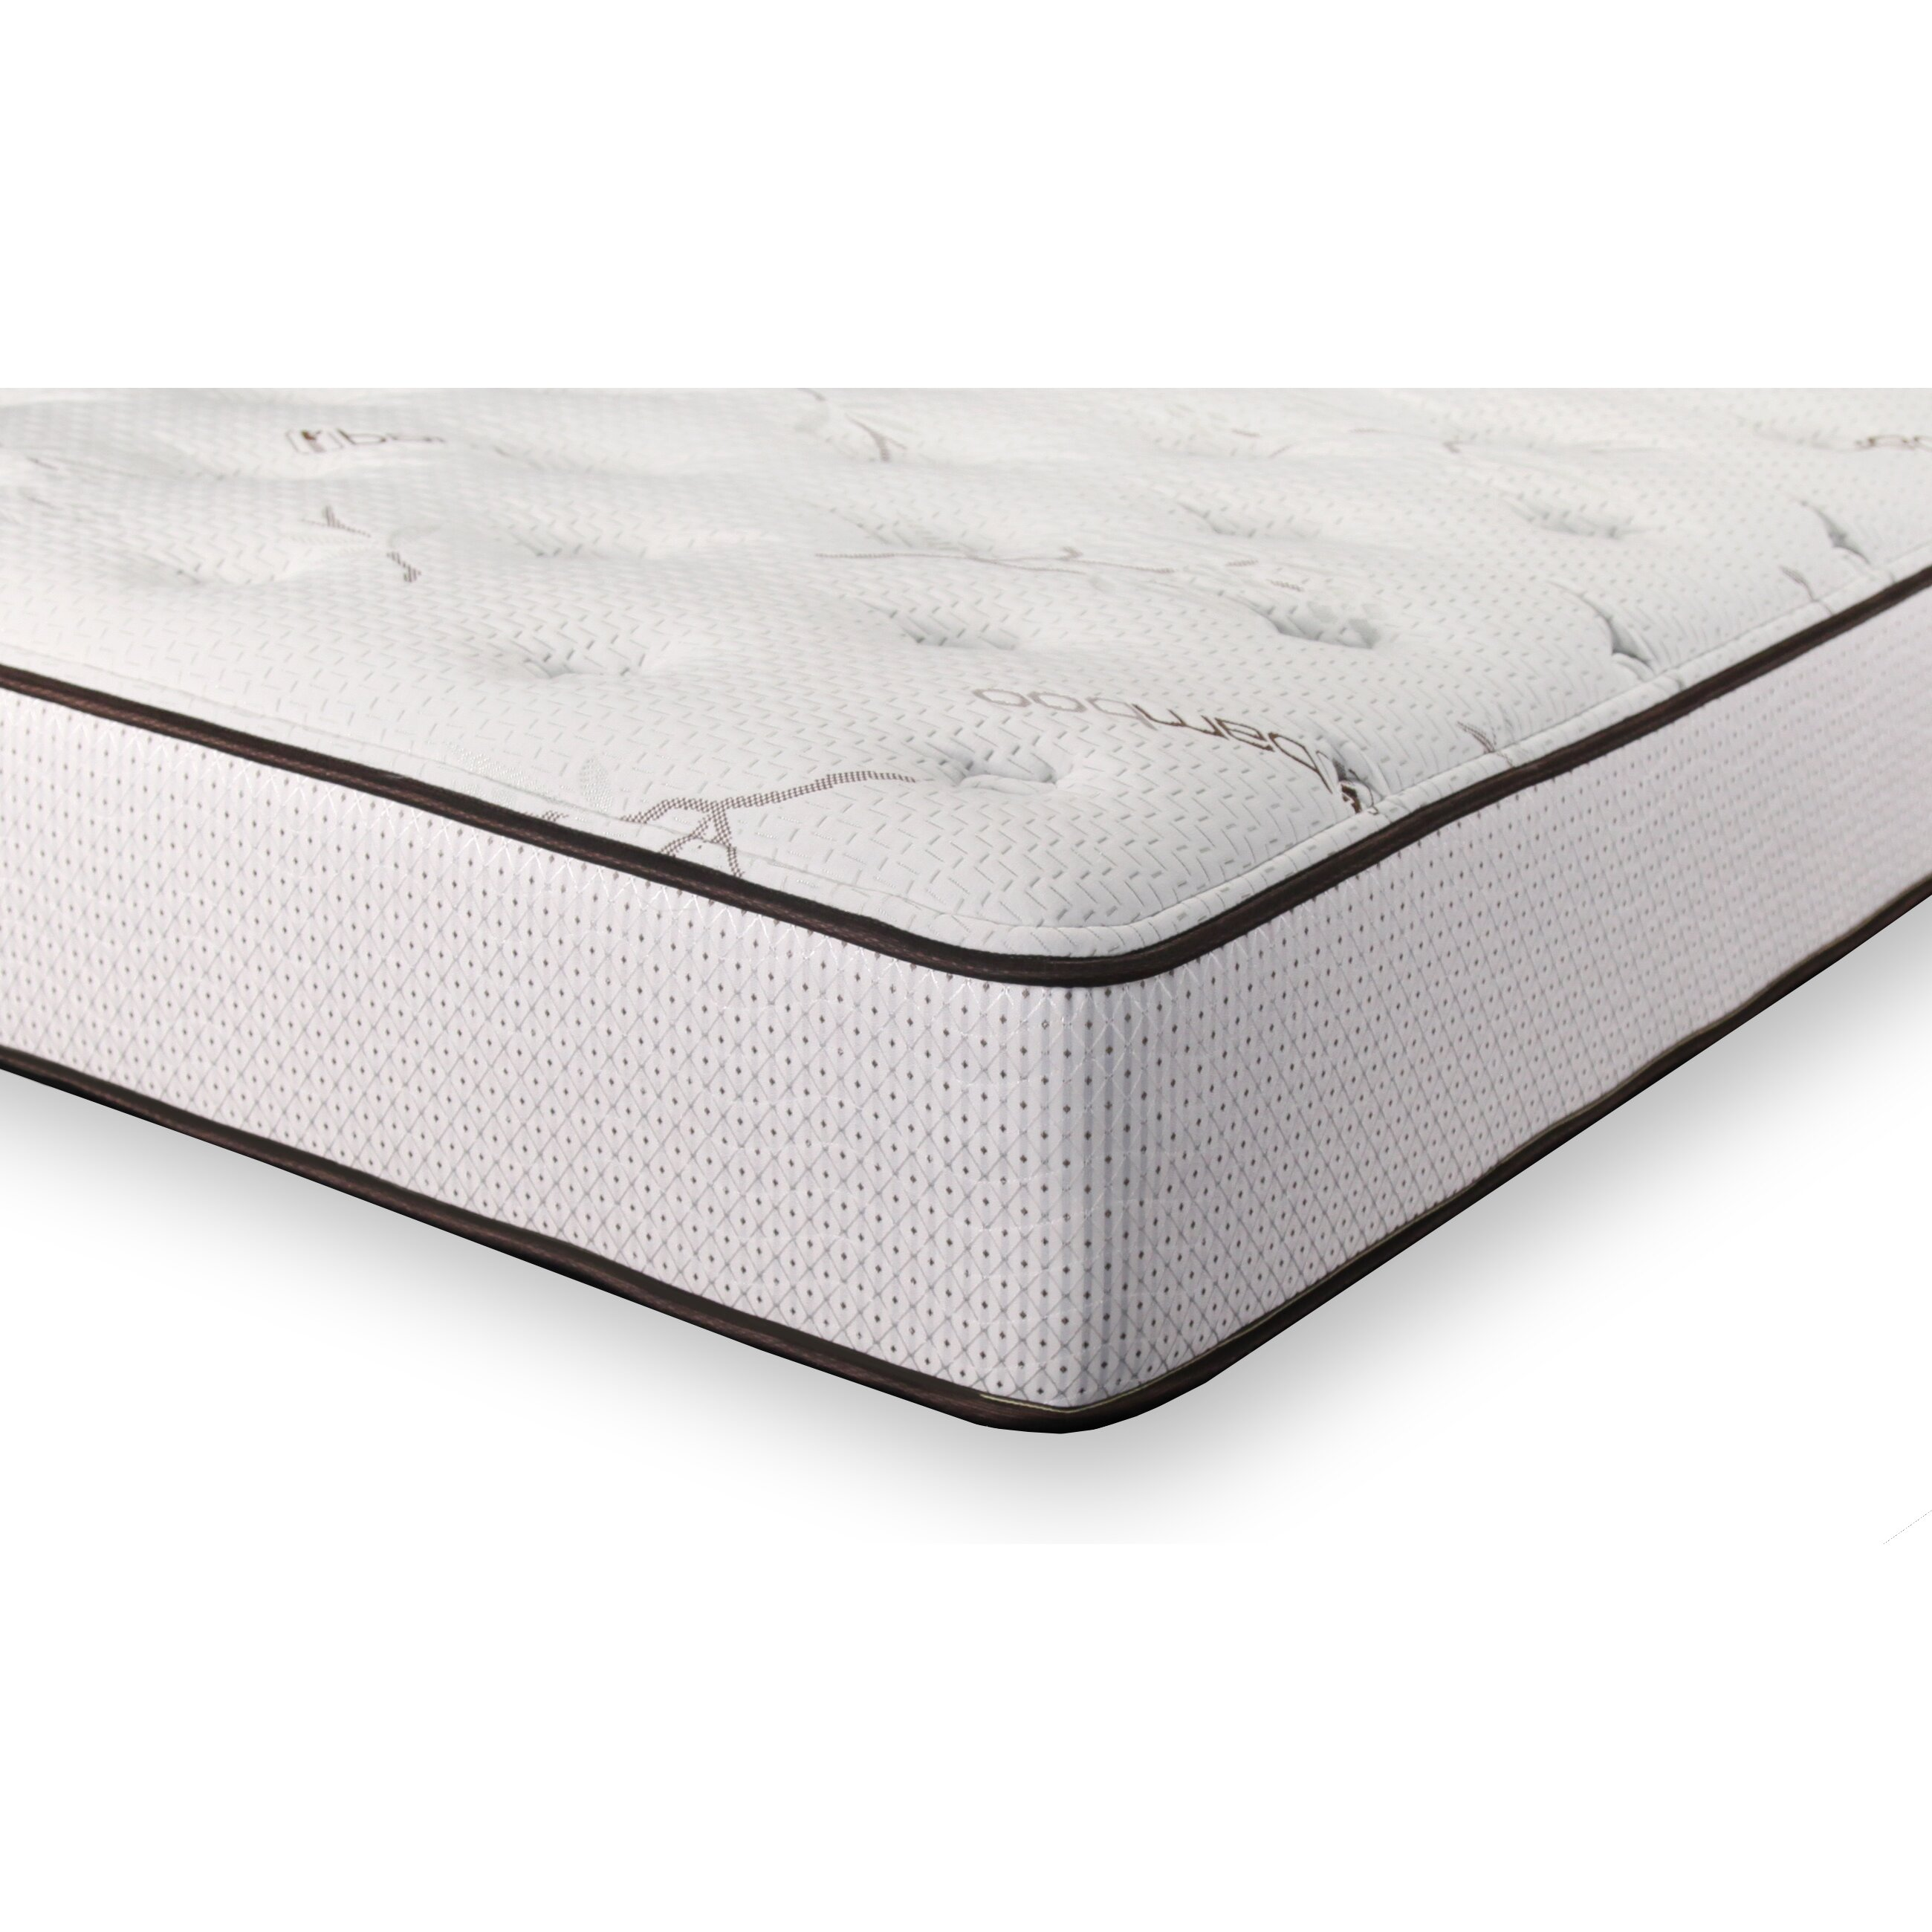 Brooklyn bedding ultimate dreams 10quot latex foam mattress for Brooklyn bedding ultimate dreams